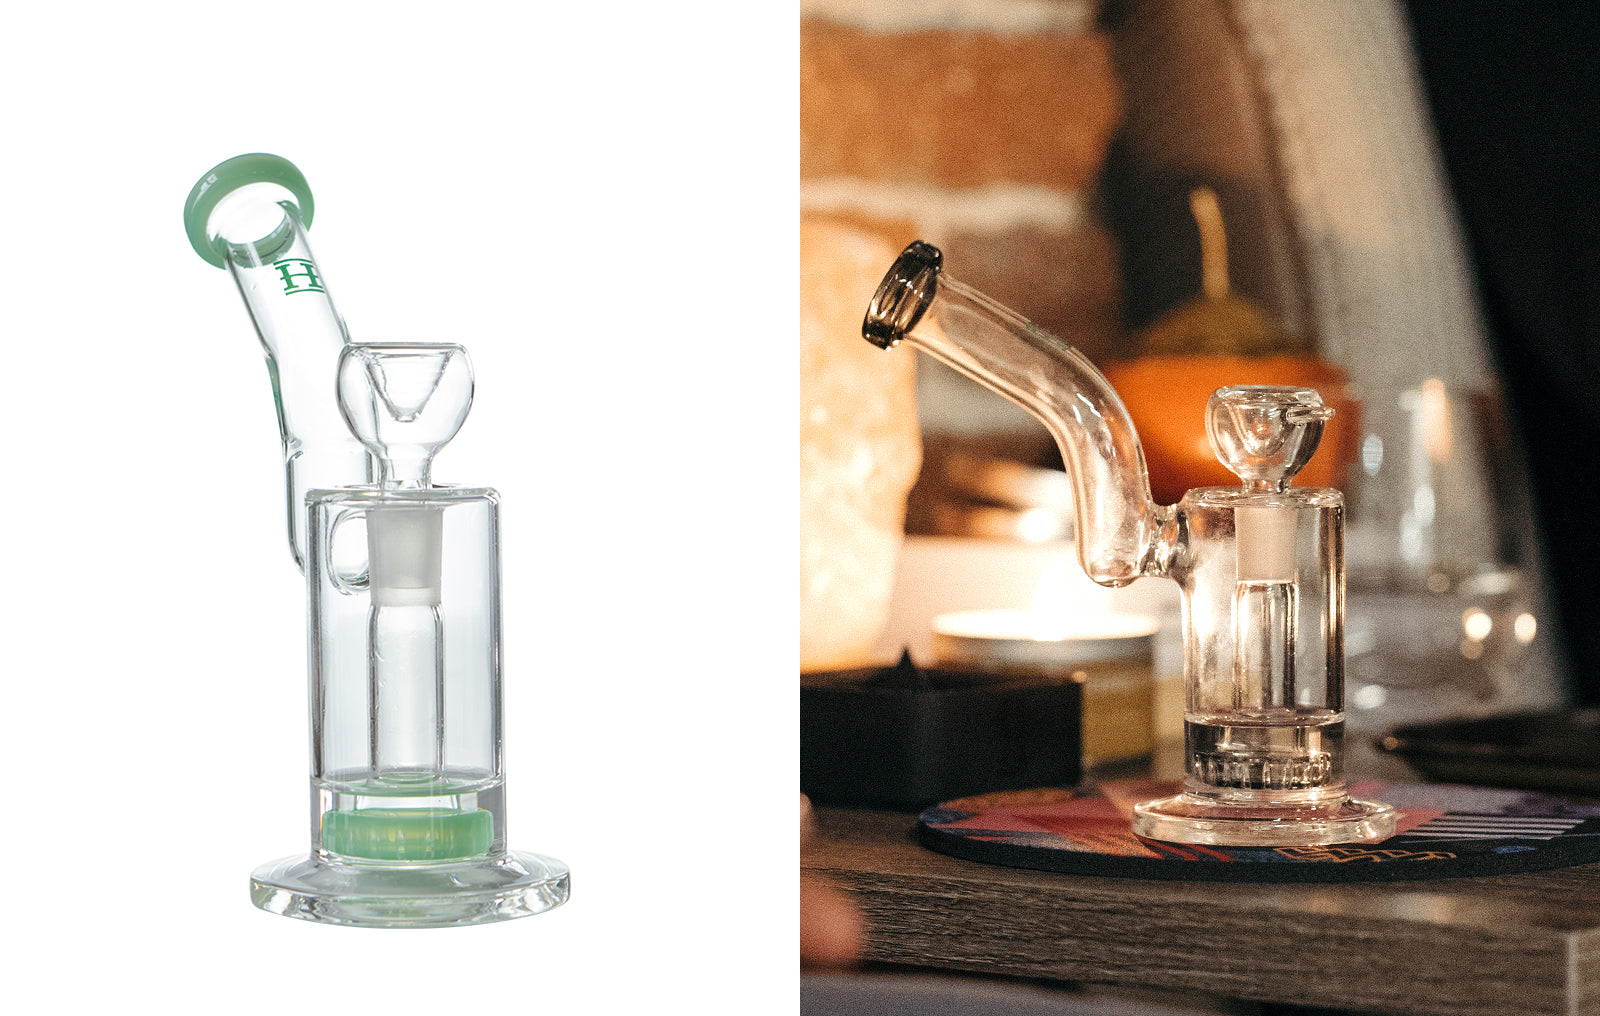 Hemper Upright Bong